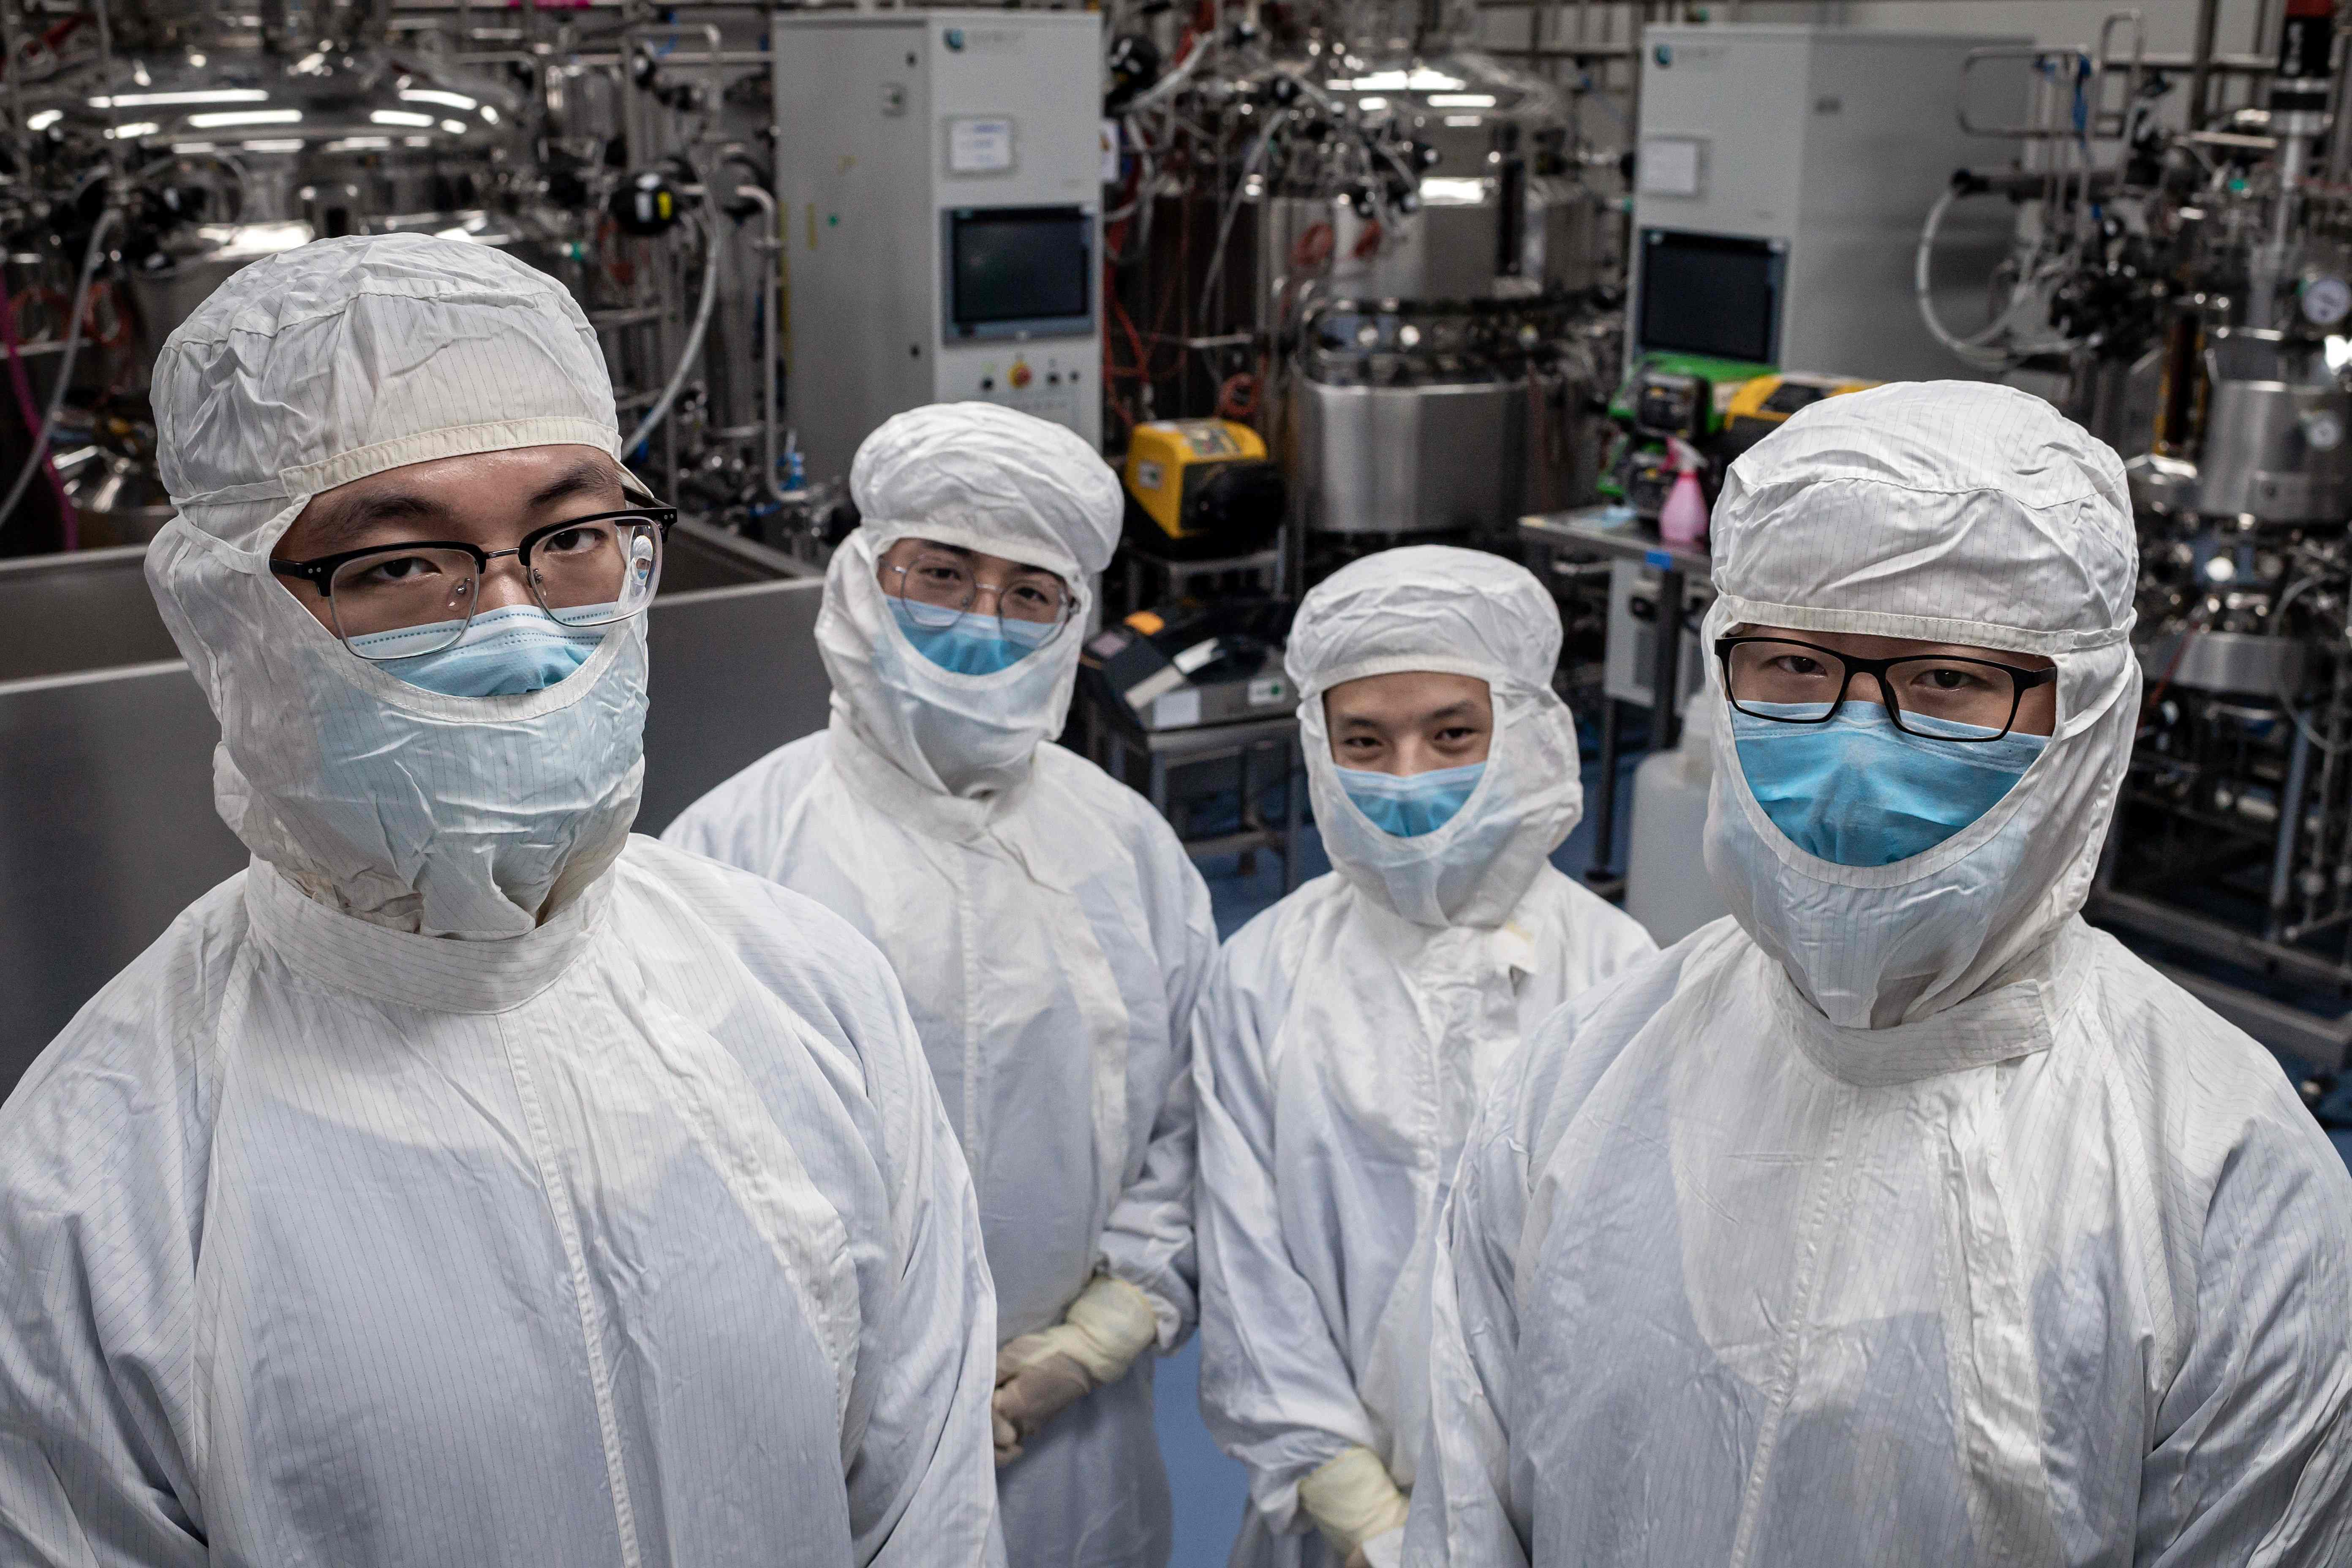 Coronavirus Vaccine Trial In China Gets Promising Early Results